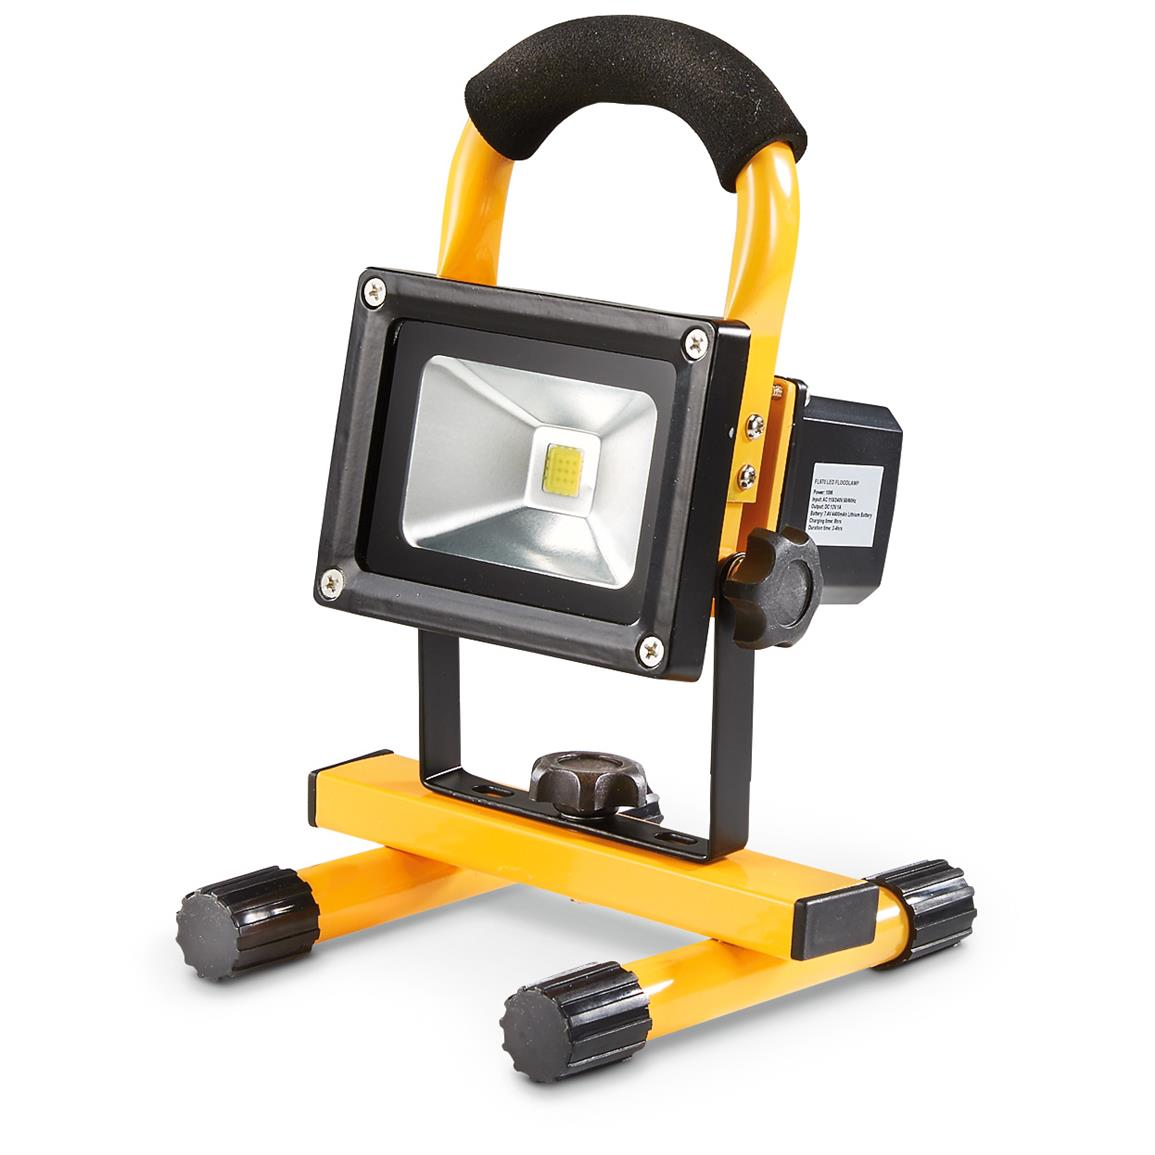 Rechargeable Waterproof Work Light, 900 Lumen